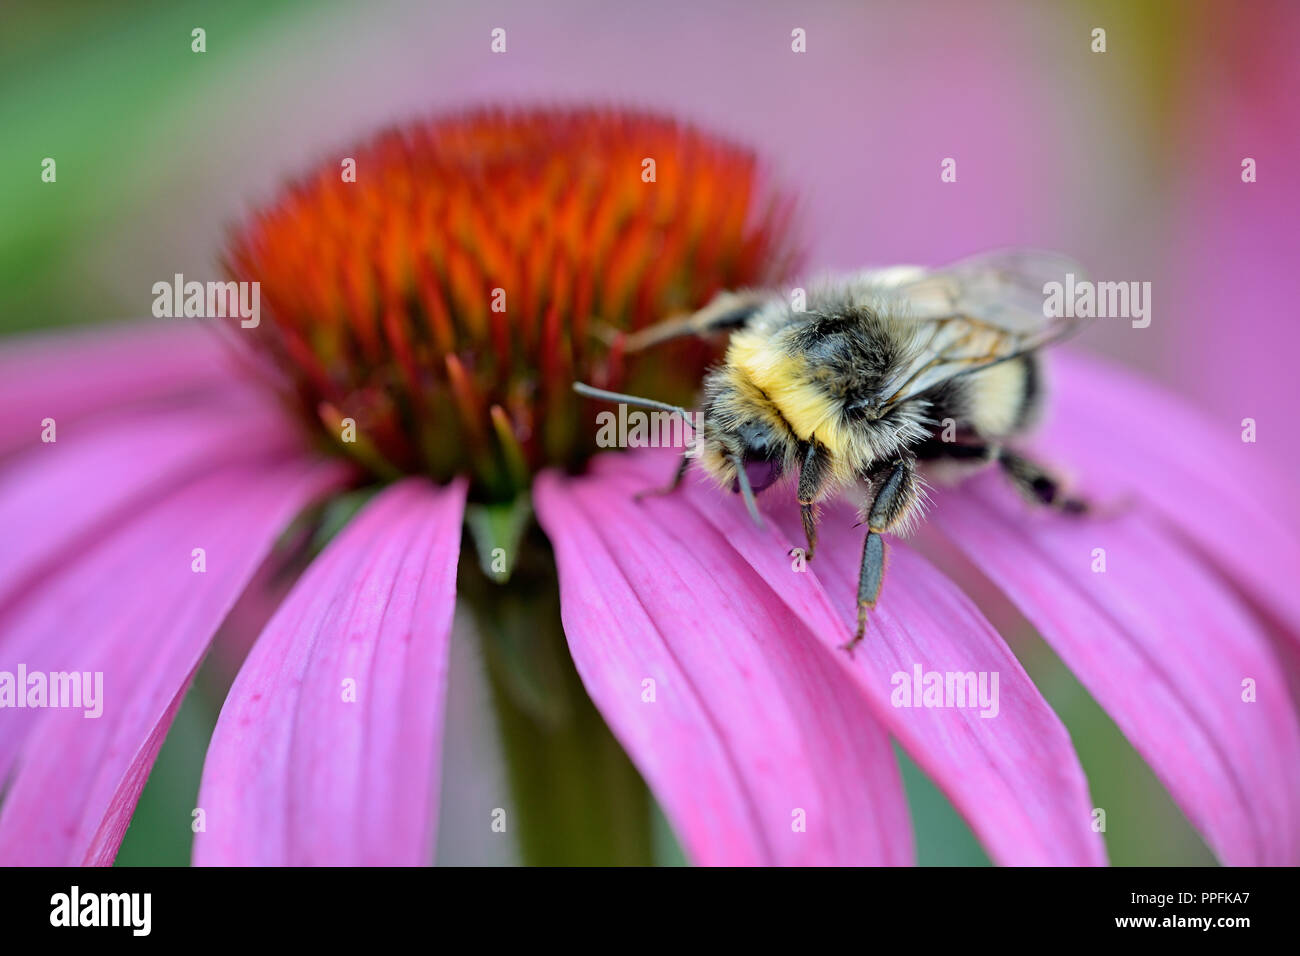 Bumblebee (Bombus) on a blossom of Purple Cone flower (Echinacea purpurea), Germany - Stock Image